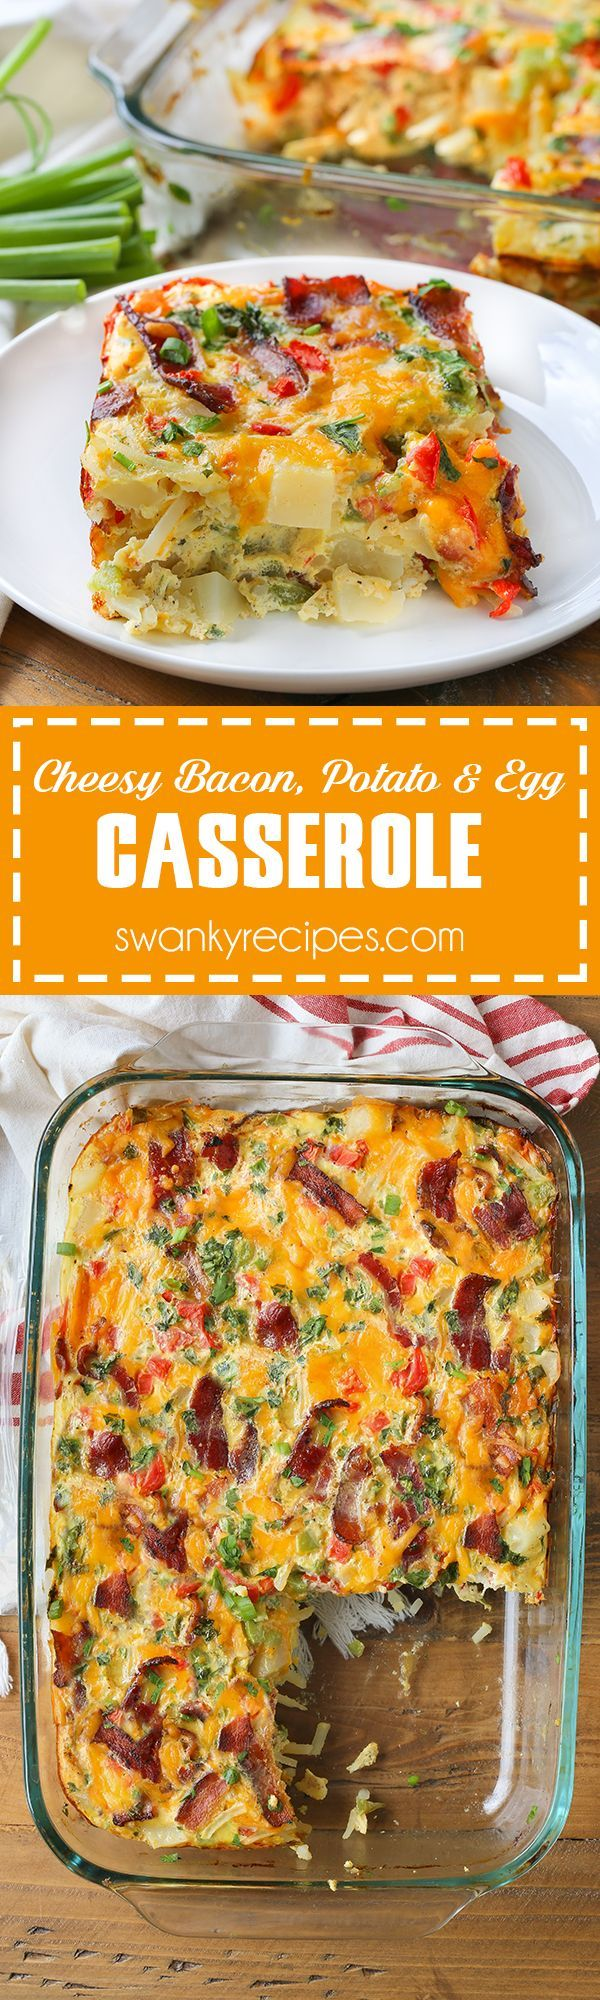 Cheesy Bacon, Potato and Egg Casserole - Quick, easy and packed full of flavor. This breakfast casserole recipe is just what your morning needs! Made with fresh vegetables, crispy bacon, cheese and eggs, this dish is made to feed a crowd. #JimmyDeanBacon #ad